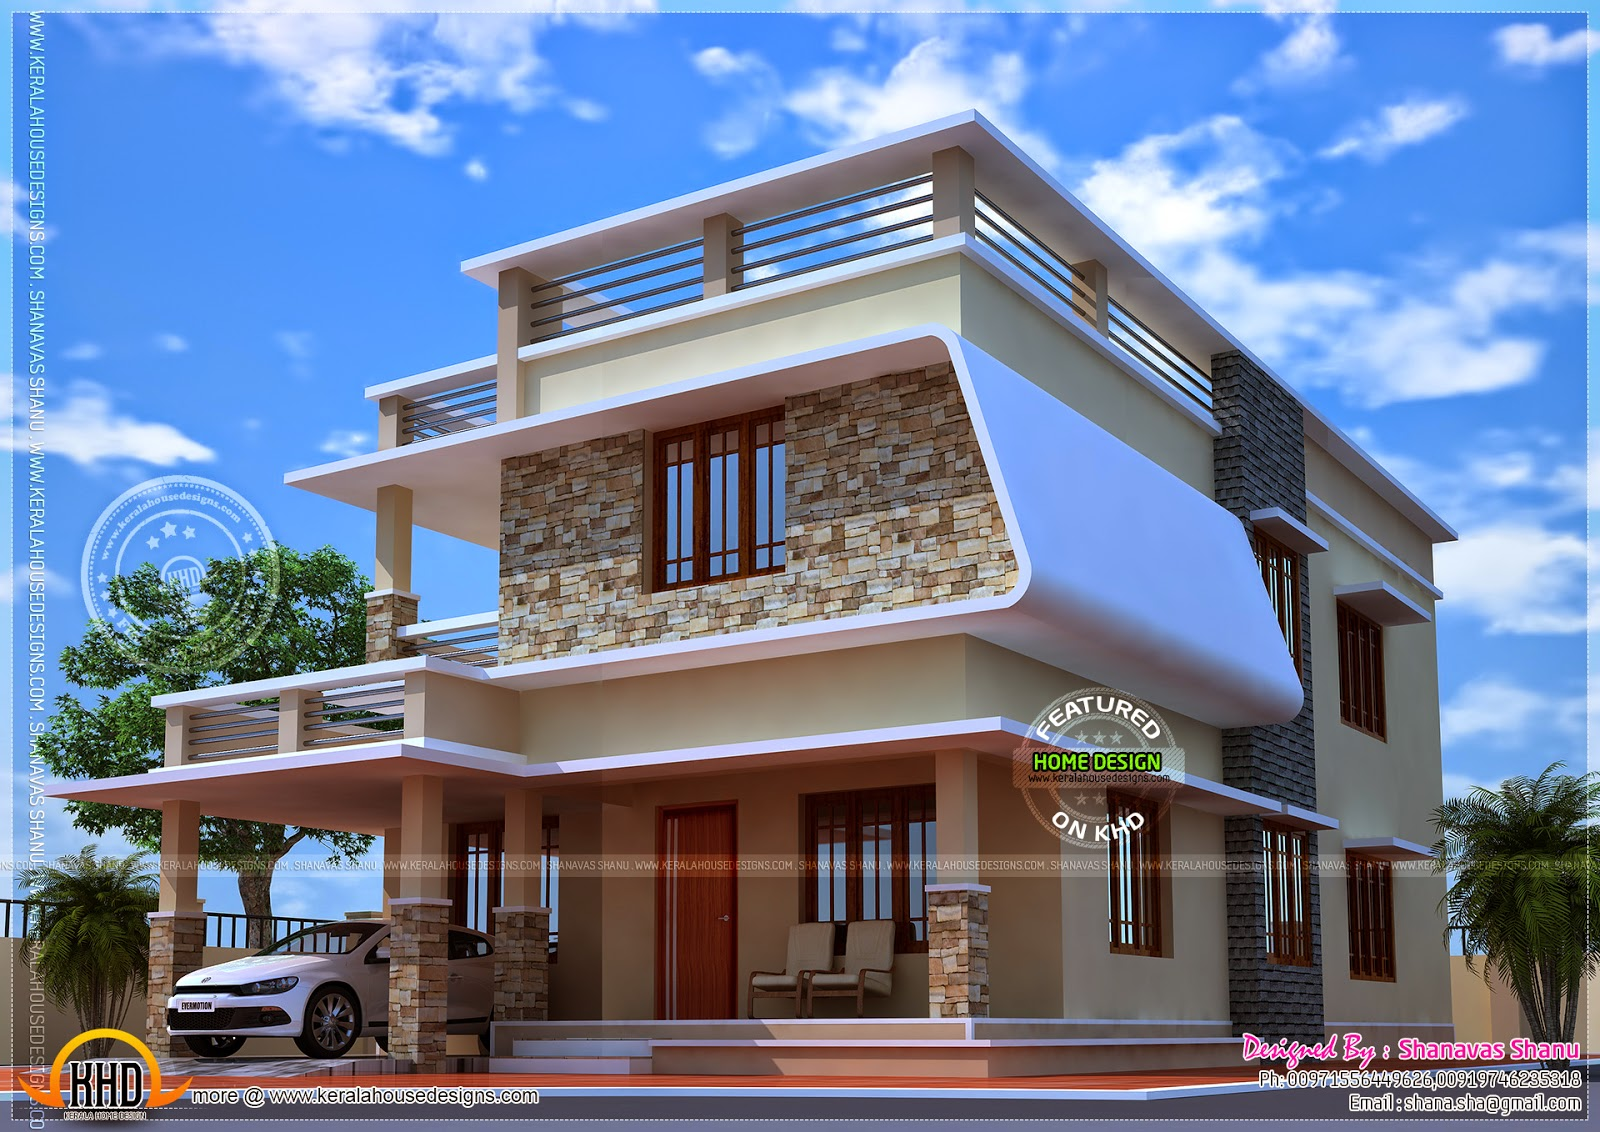 Nice modern house with free floor plan kerala home design and floor plans - New house design ...